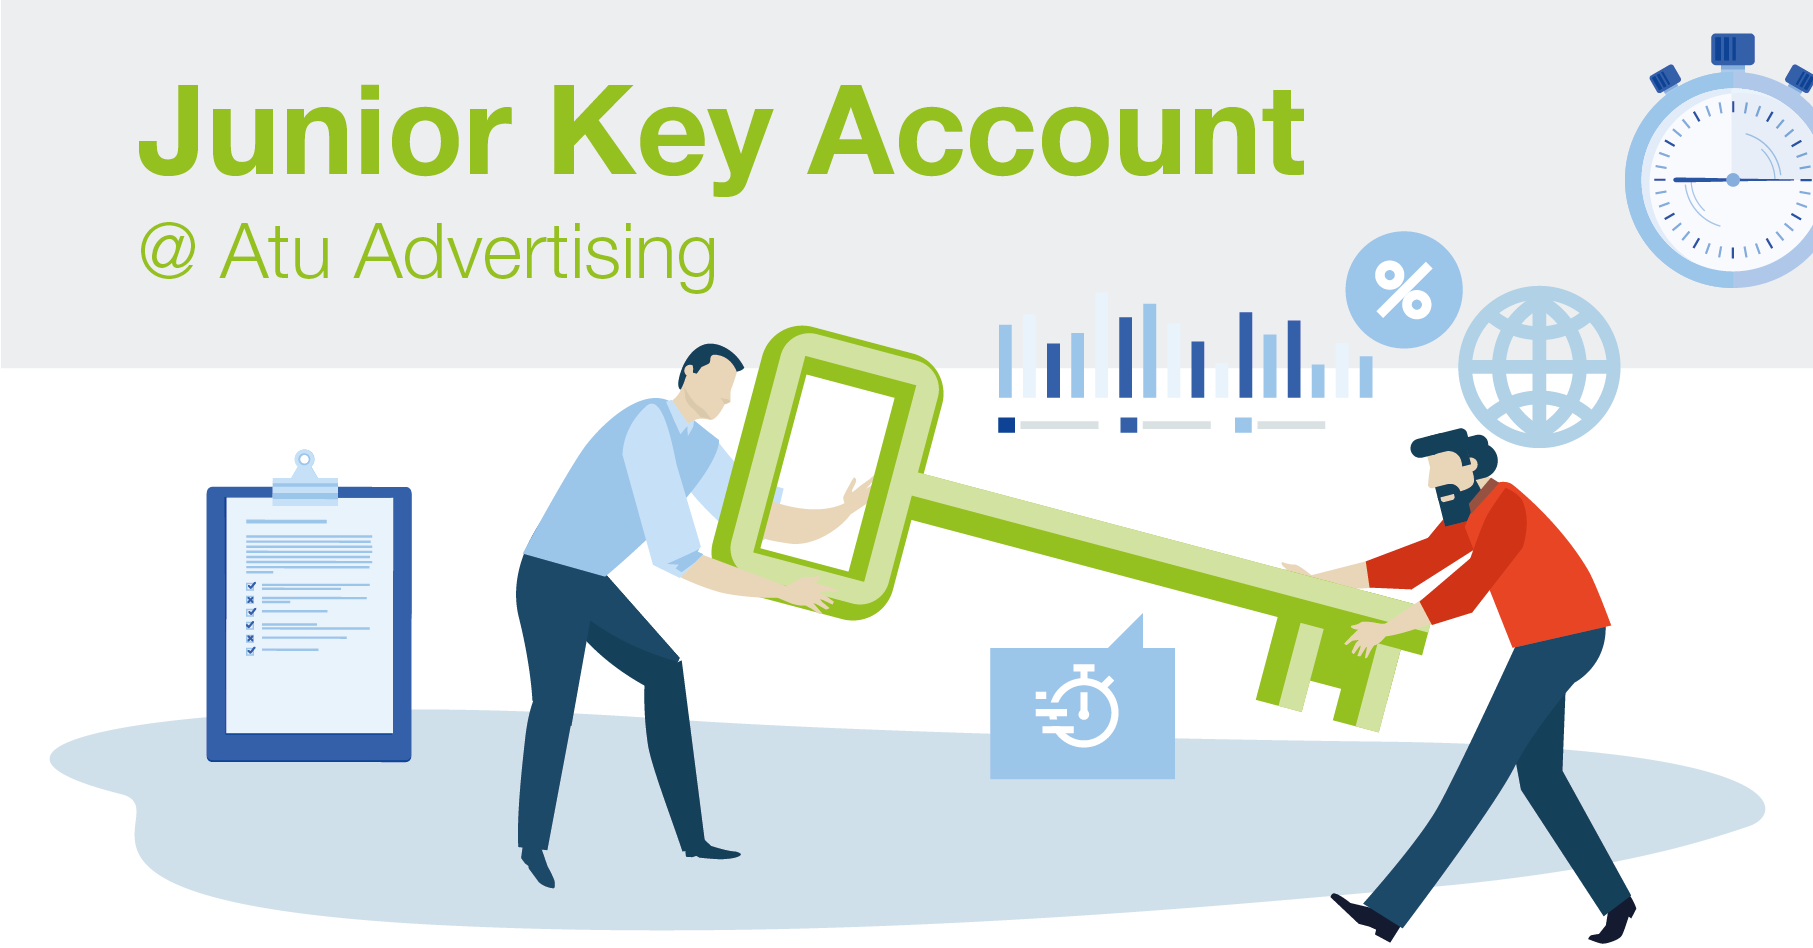 Junior Key Account Atu Advertising